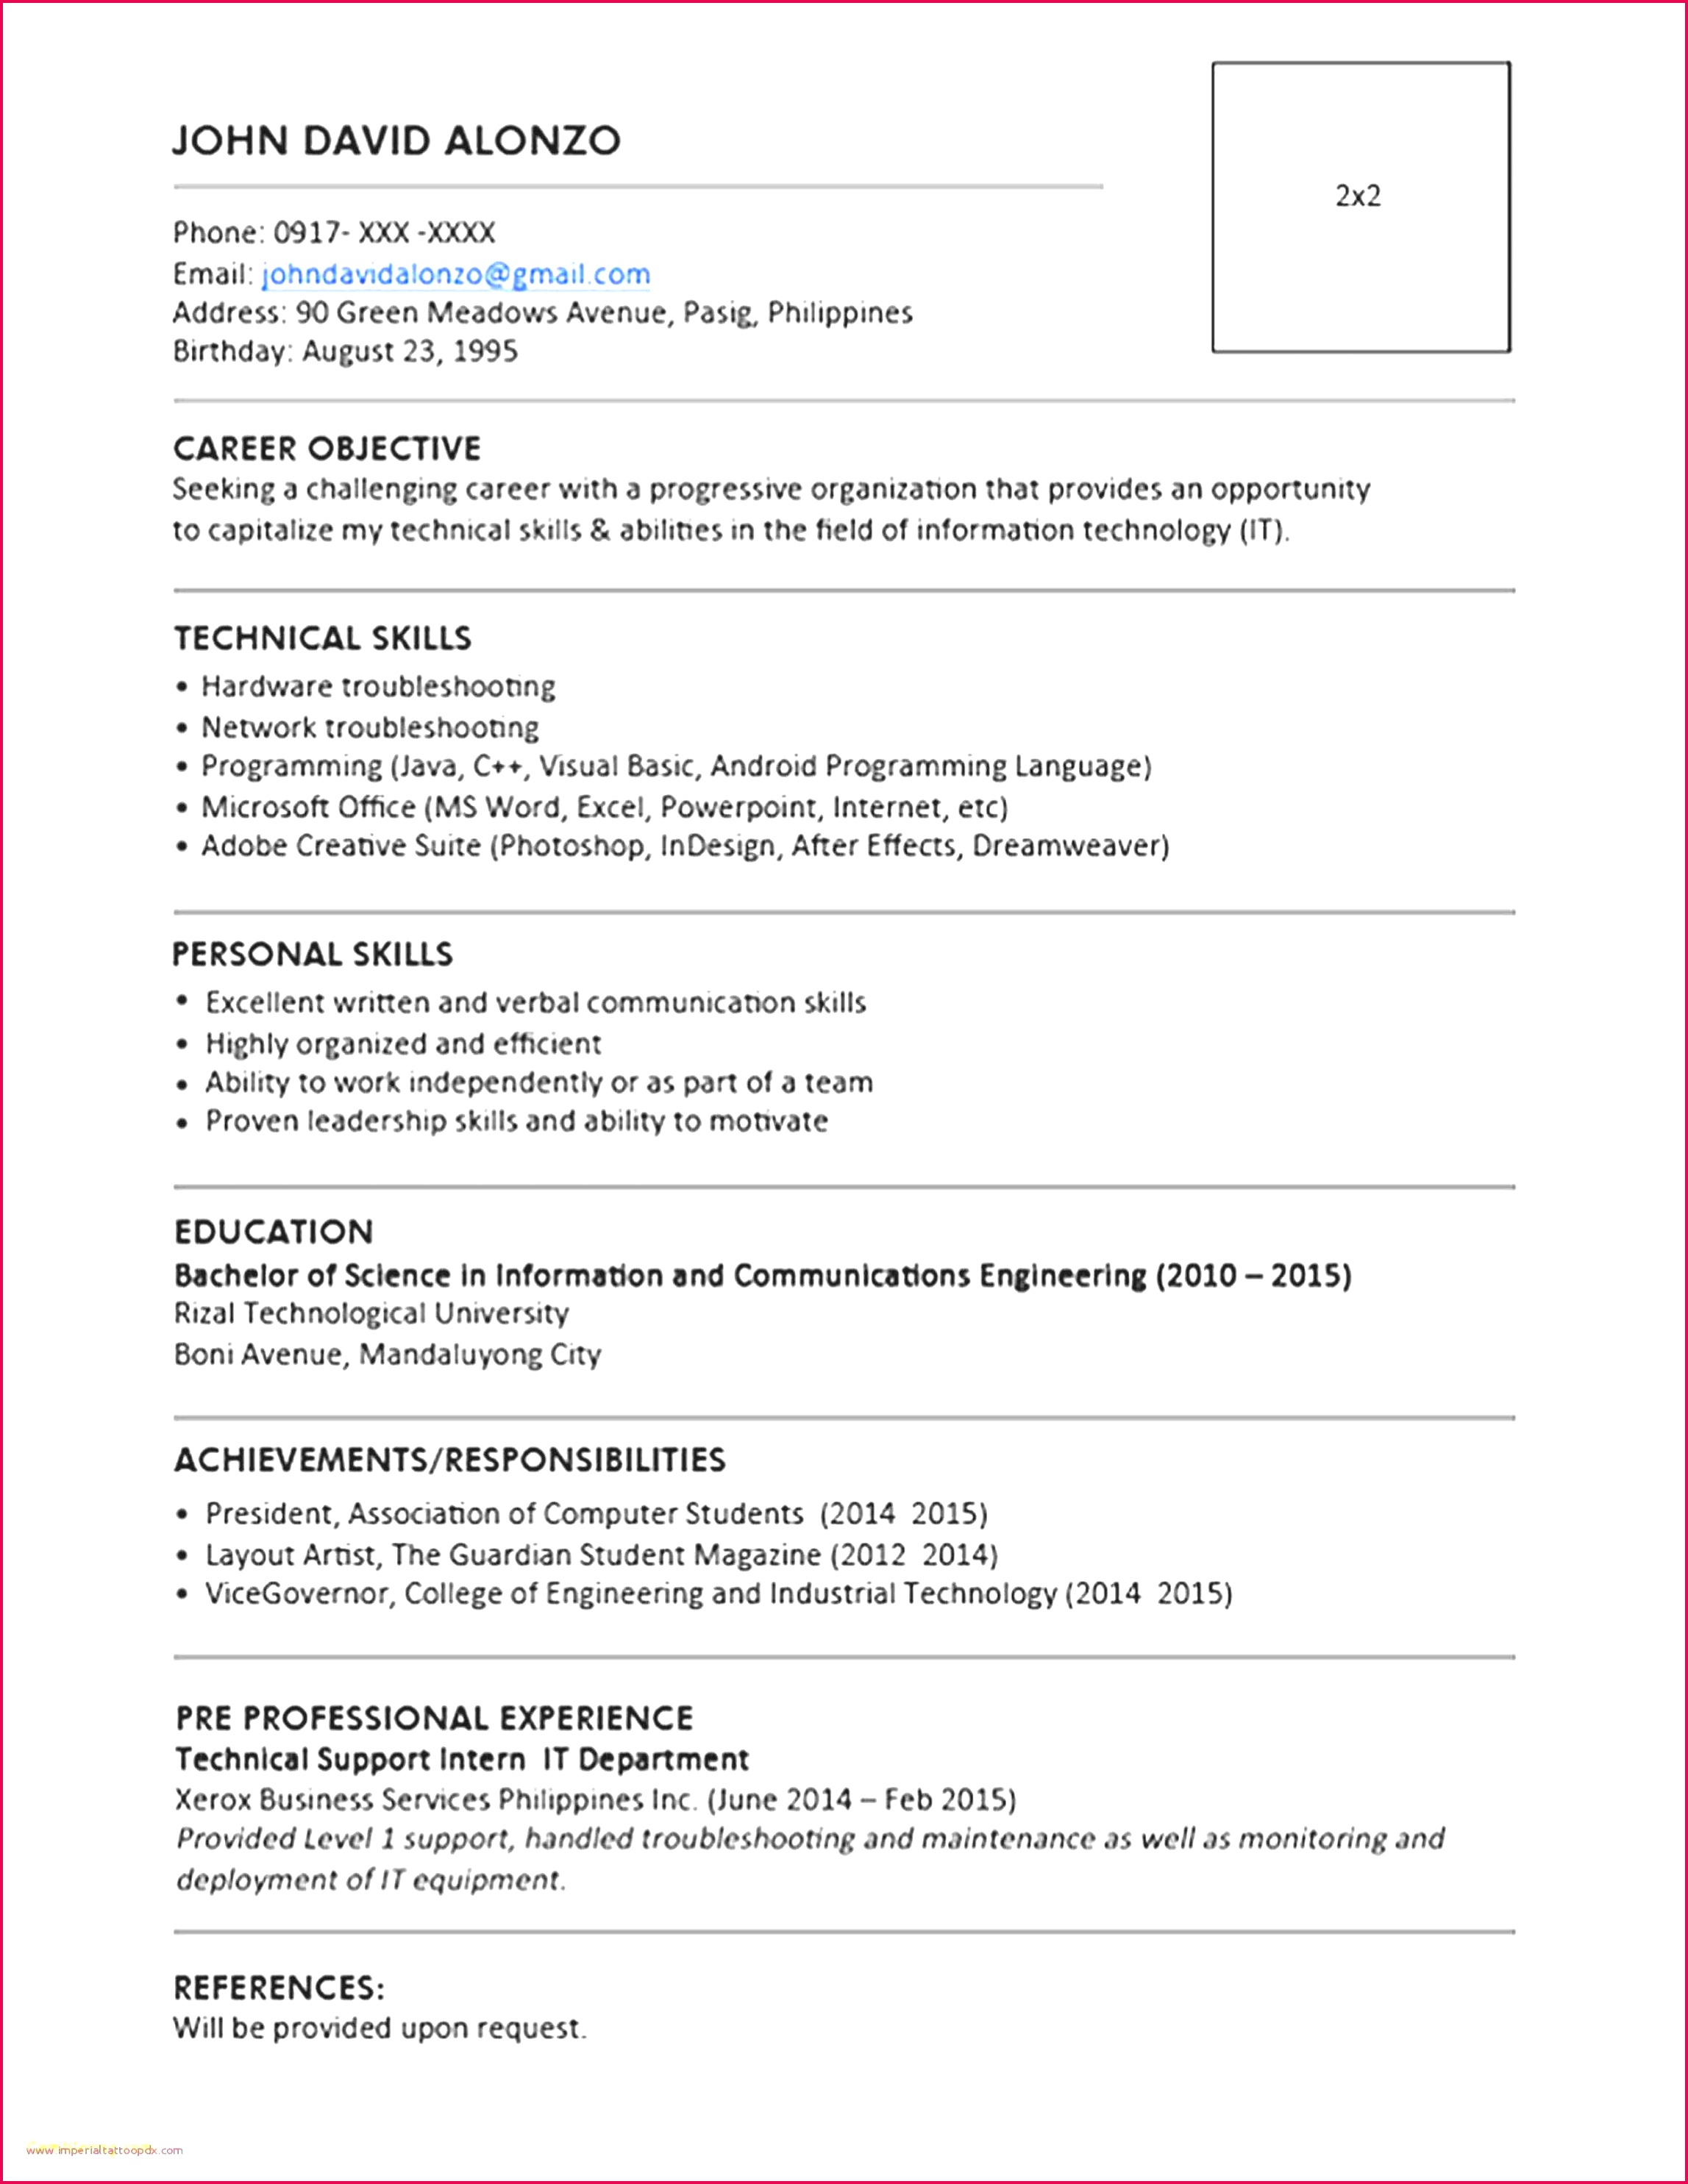 free cv layout template word new templates 0d wallpapers 52 best resumes example